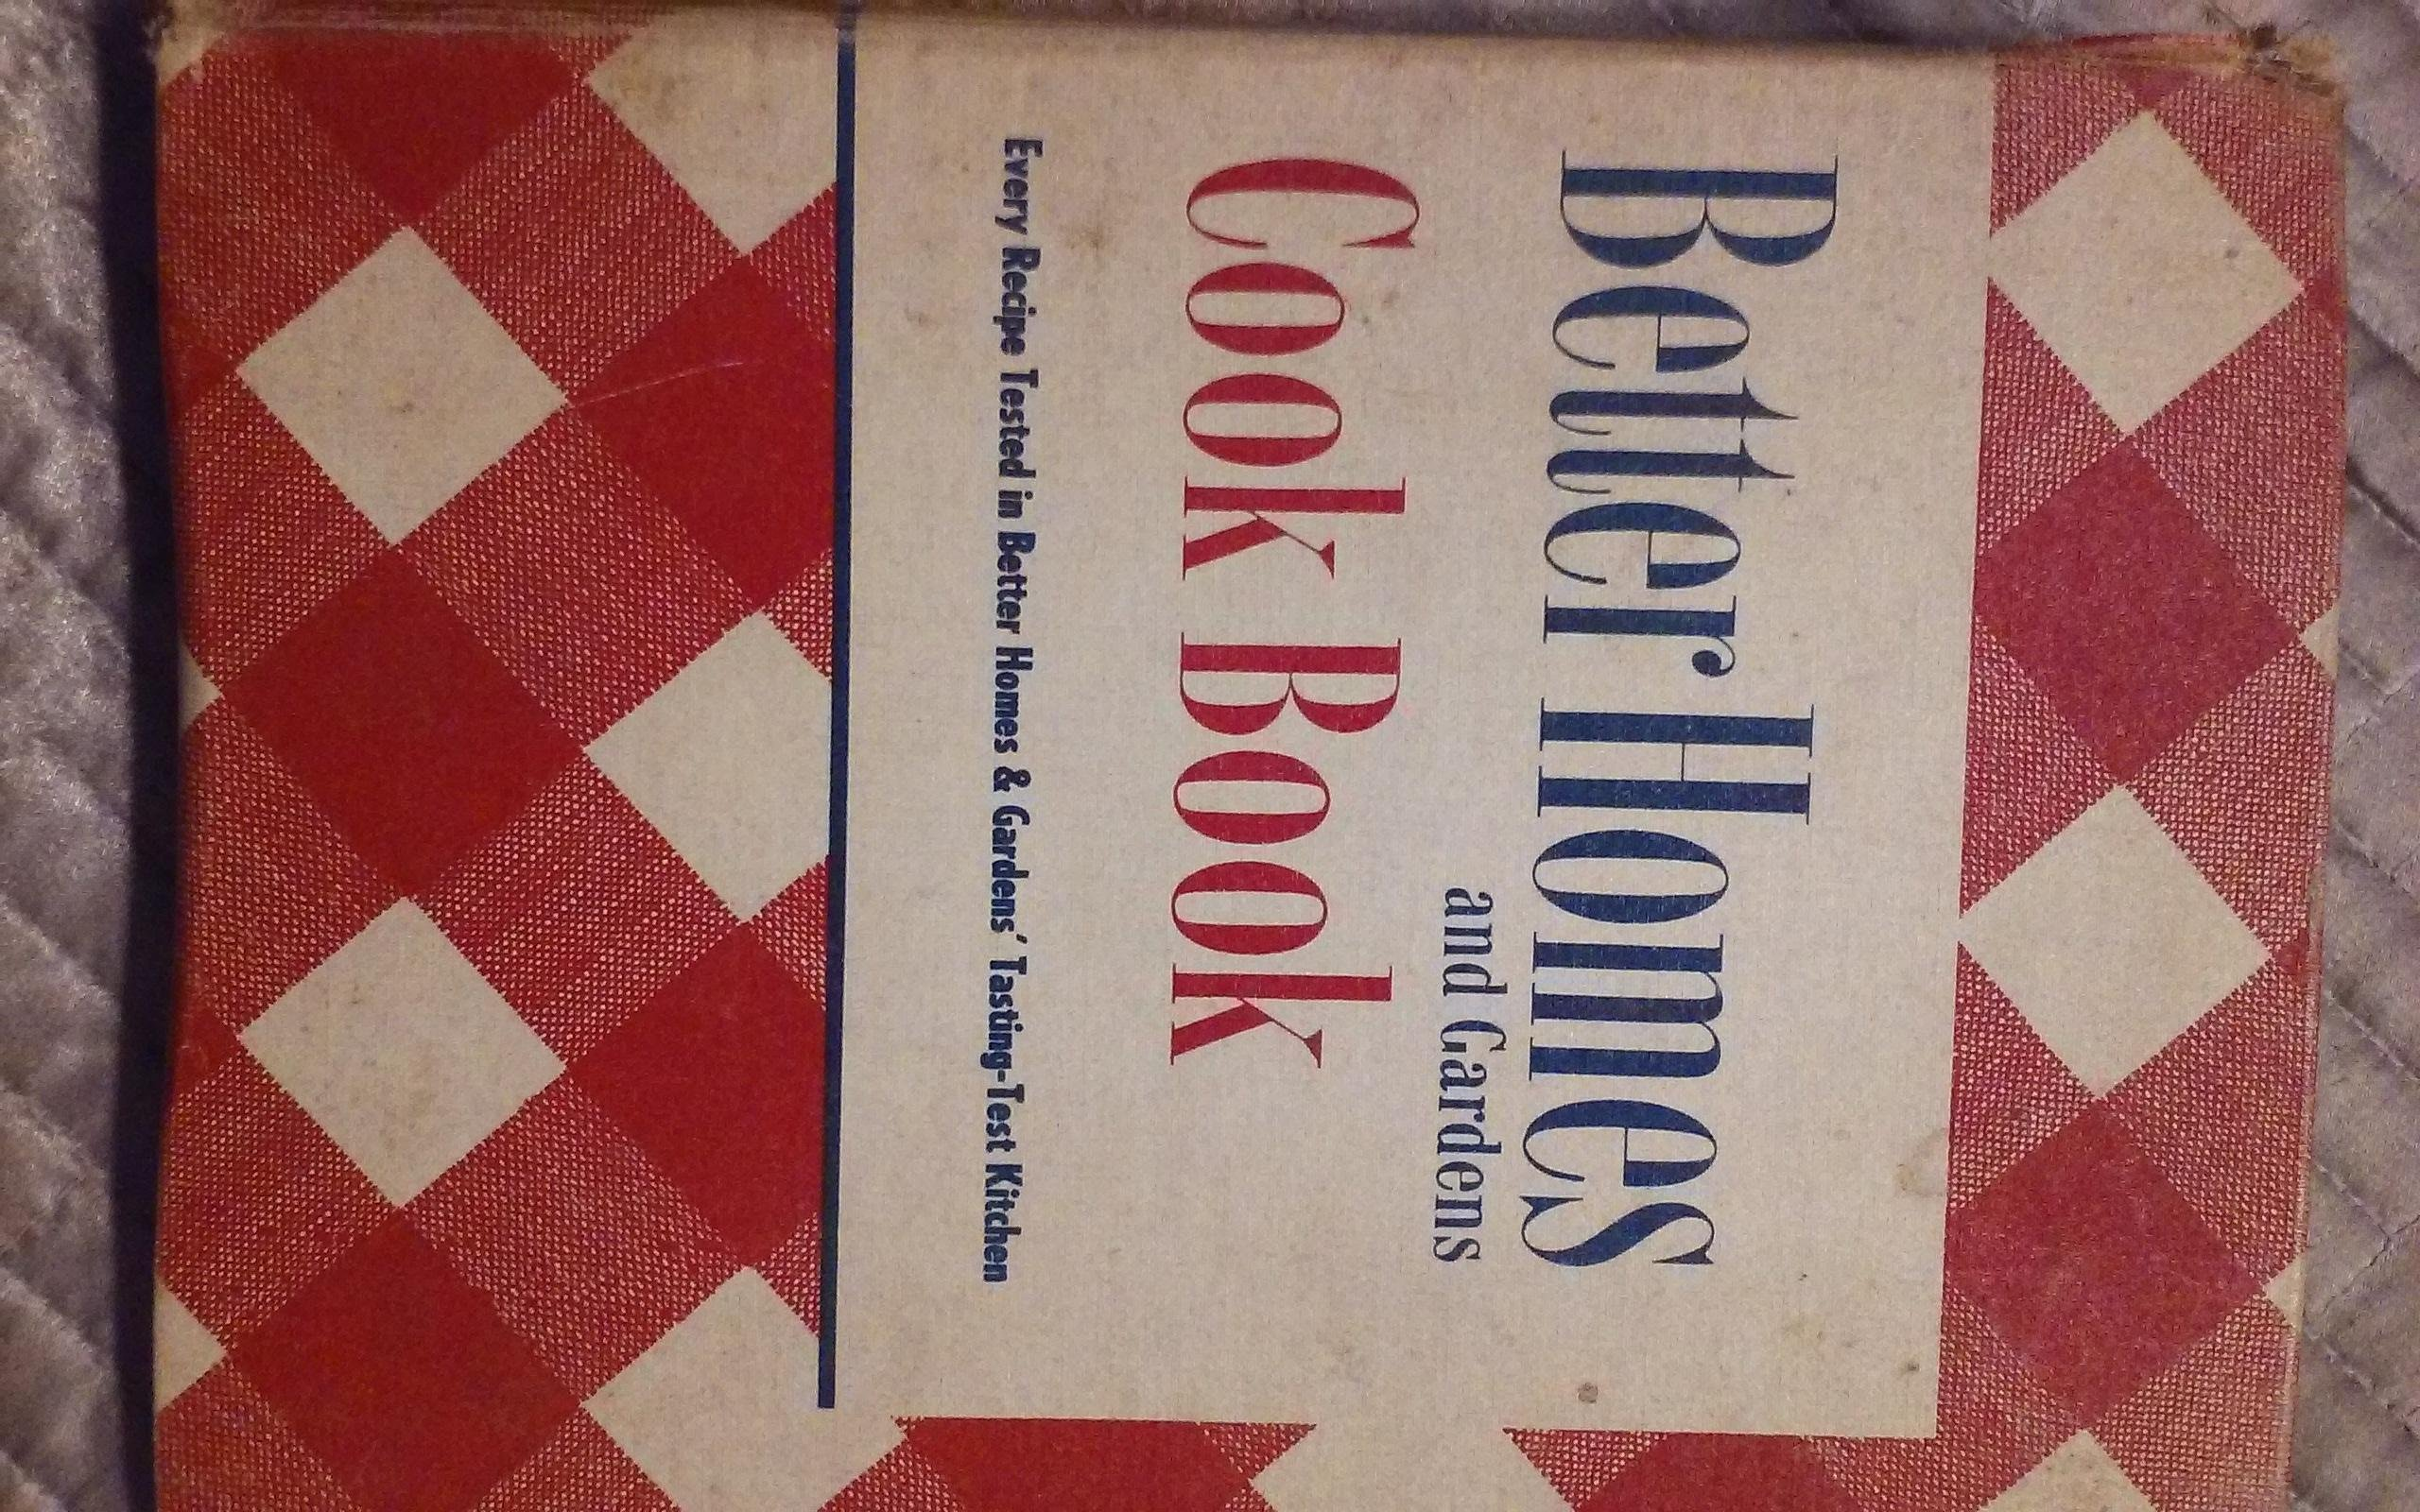 Better Homes and Gardens Cook Book 1950 Hardcover – 1950